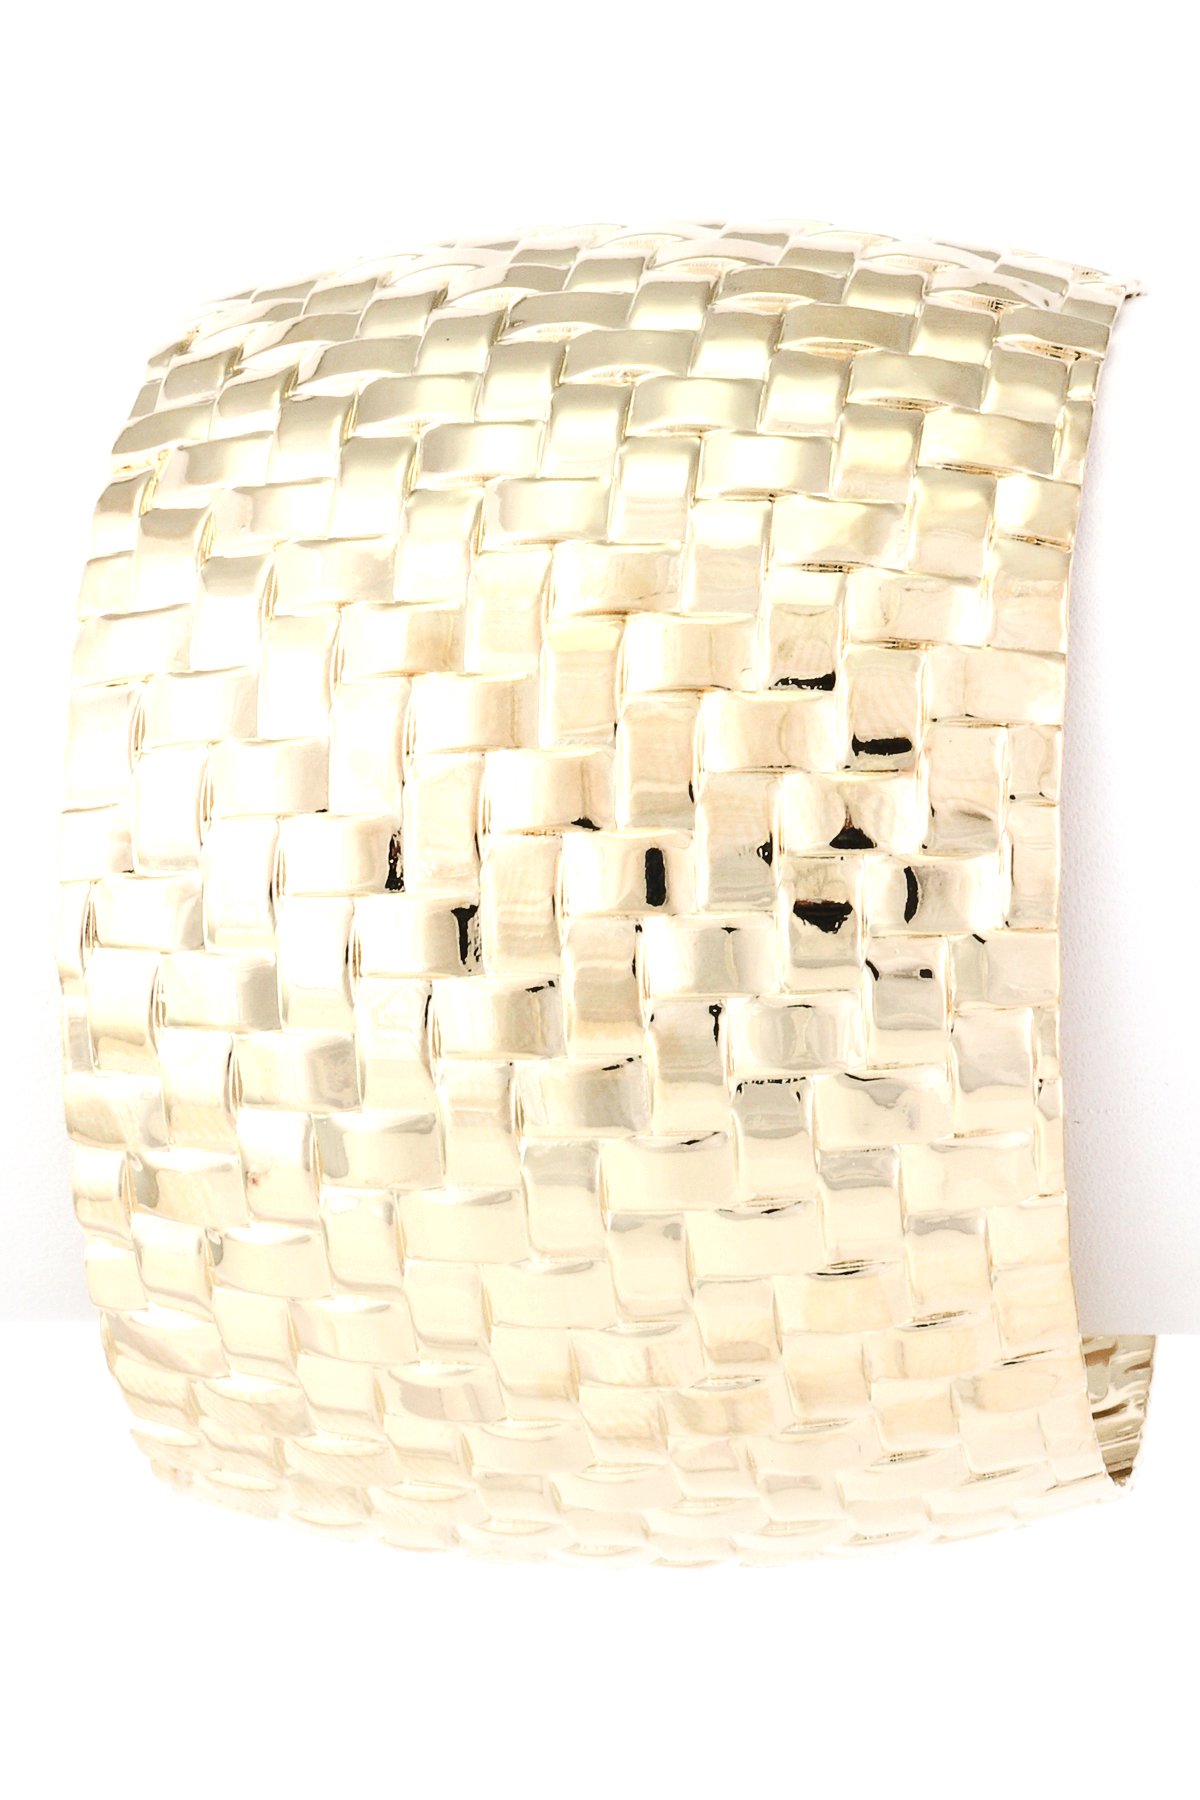 How To Basket Weave Bracelet : Basket weave textured cuff bracelet bracelets